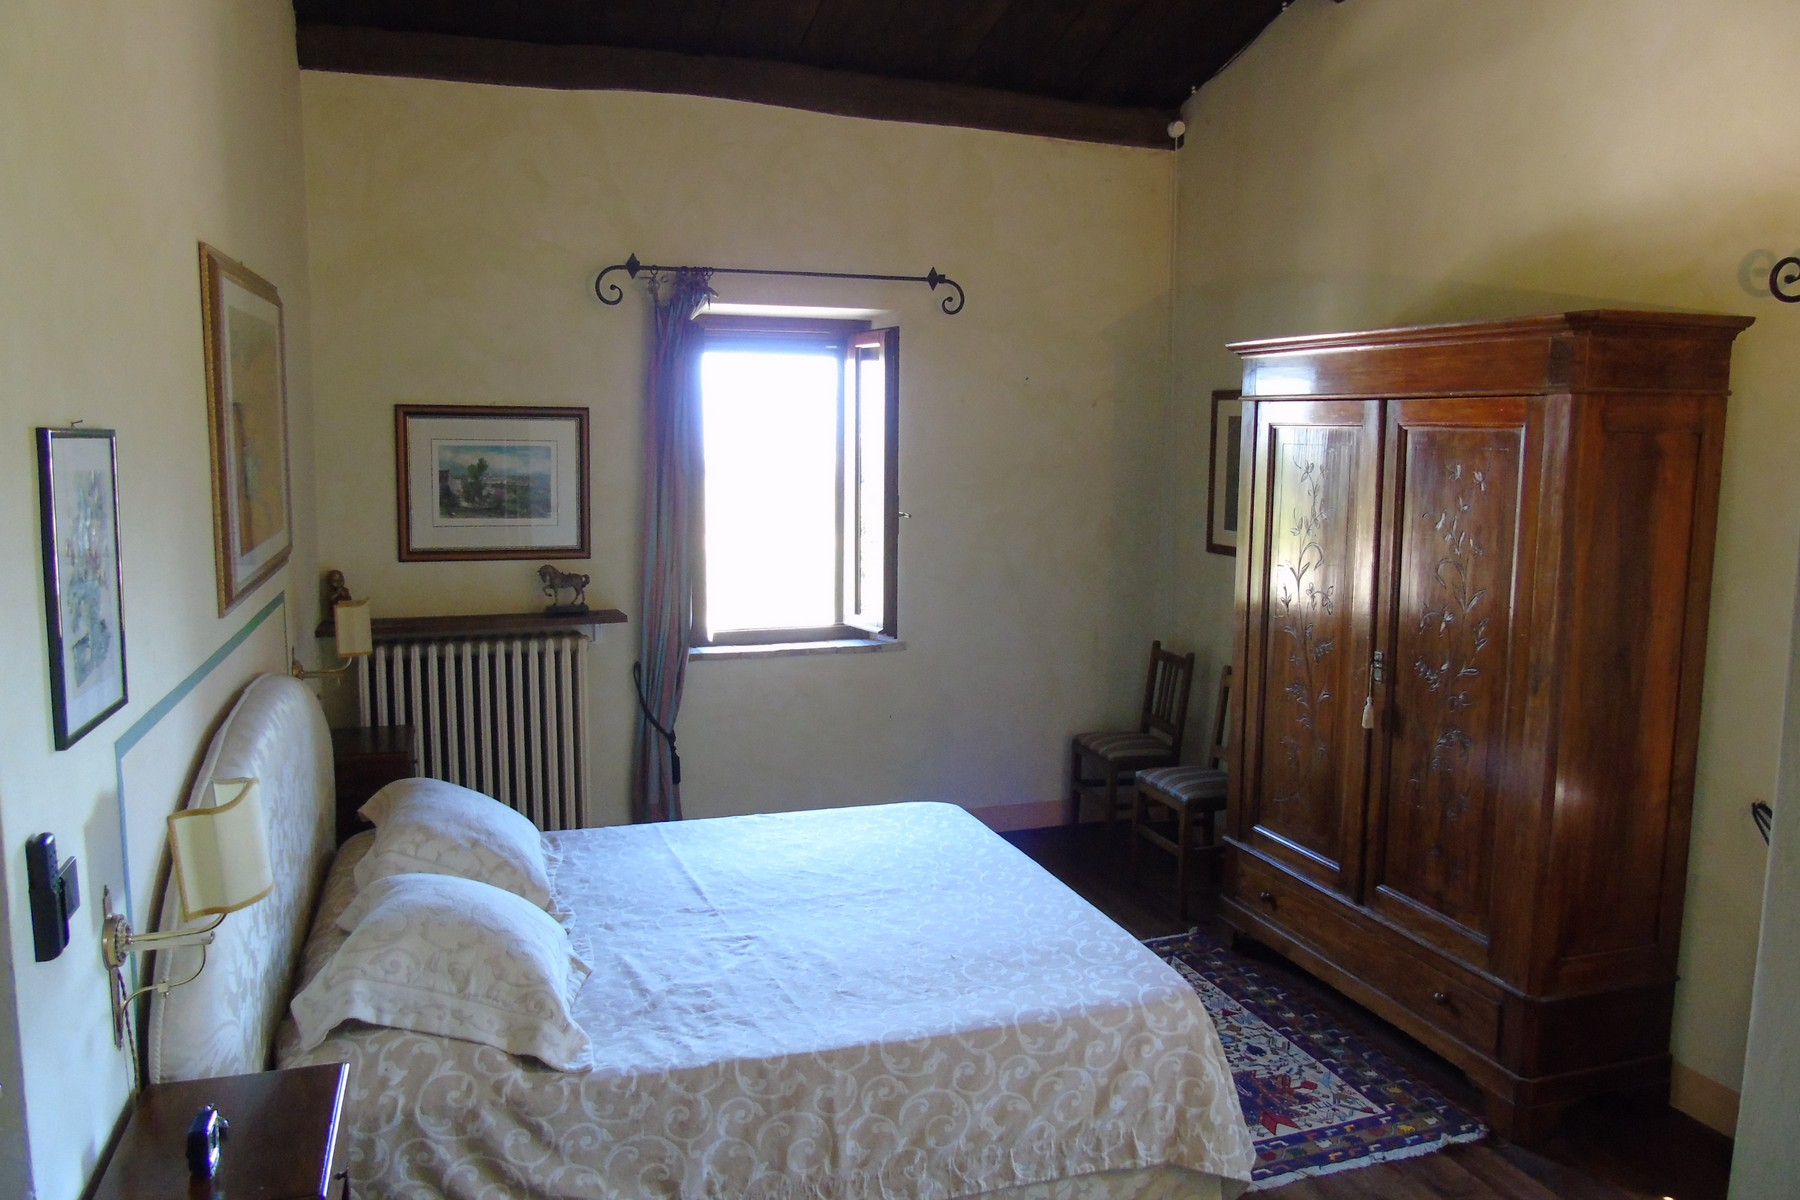 Additional photo for property listing at Lovely farmhouse with panaromic views of Assisi Via dei Colli Bettona Perugia, Perugia 06084 Italie